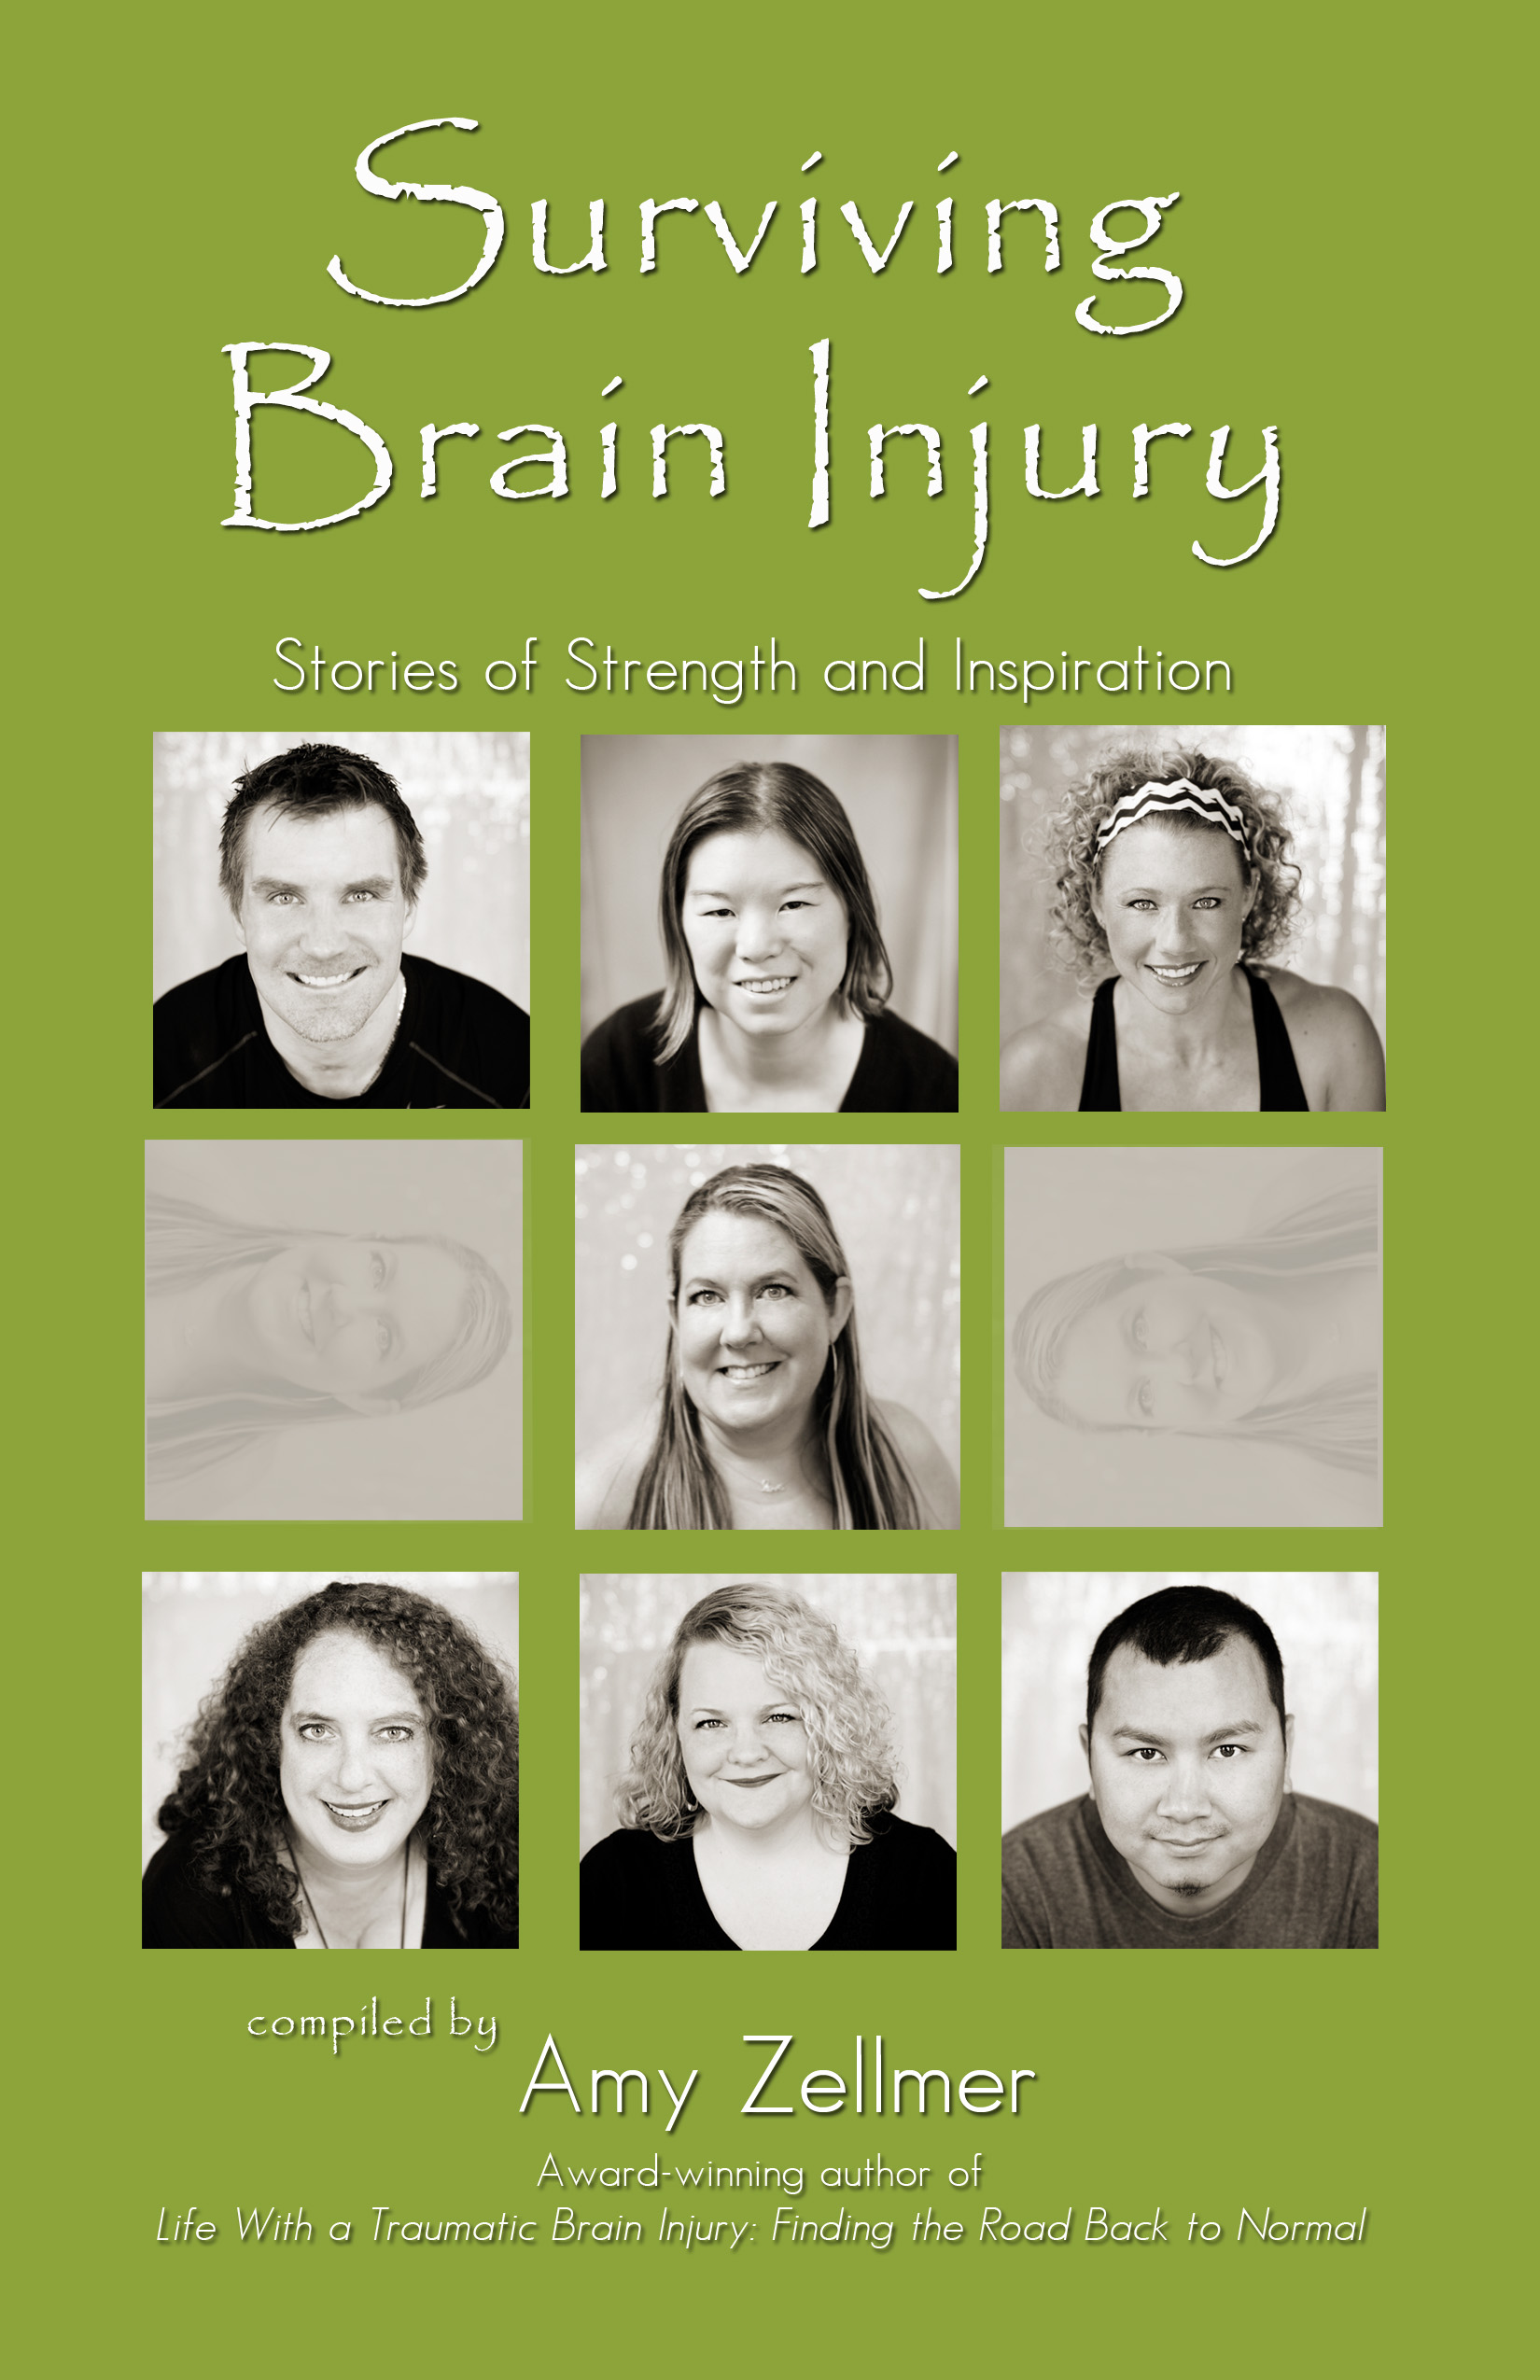 Surviving Brain Injury: Stories of Strength and Inspiration